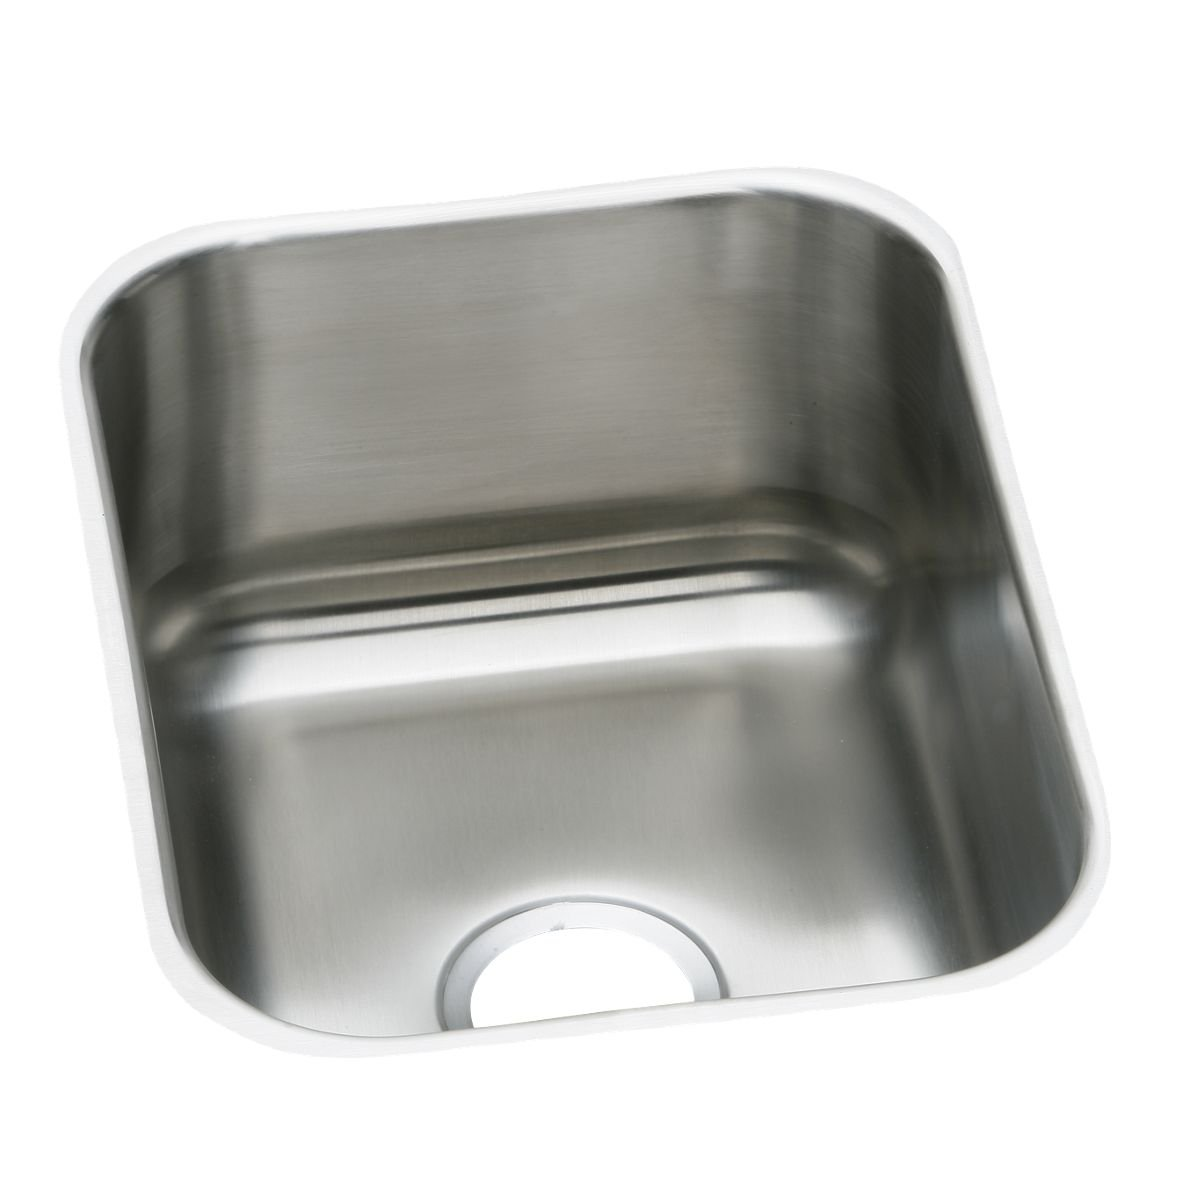 Revere RCFU31189 Double Bowl Undermount Stainless Steel Sink